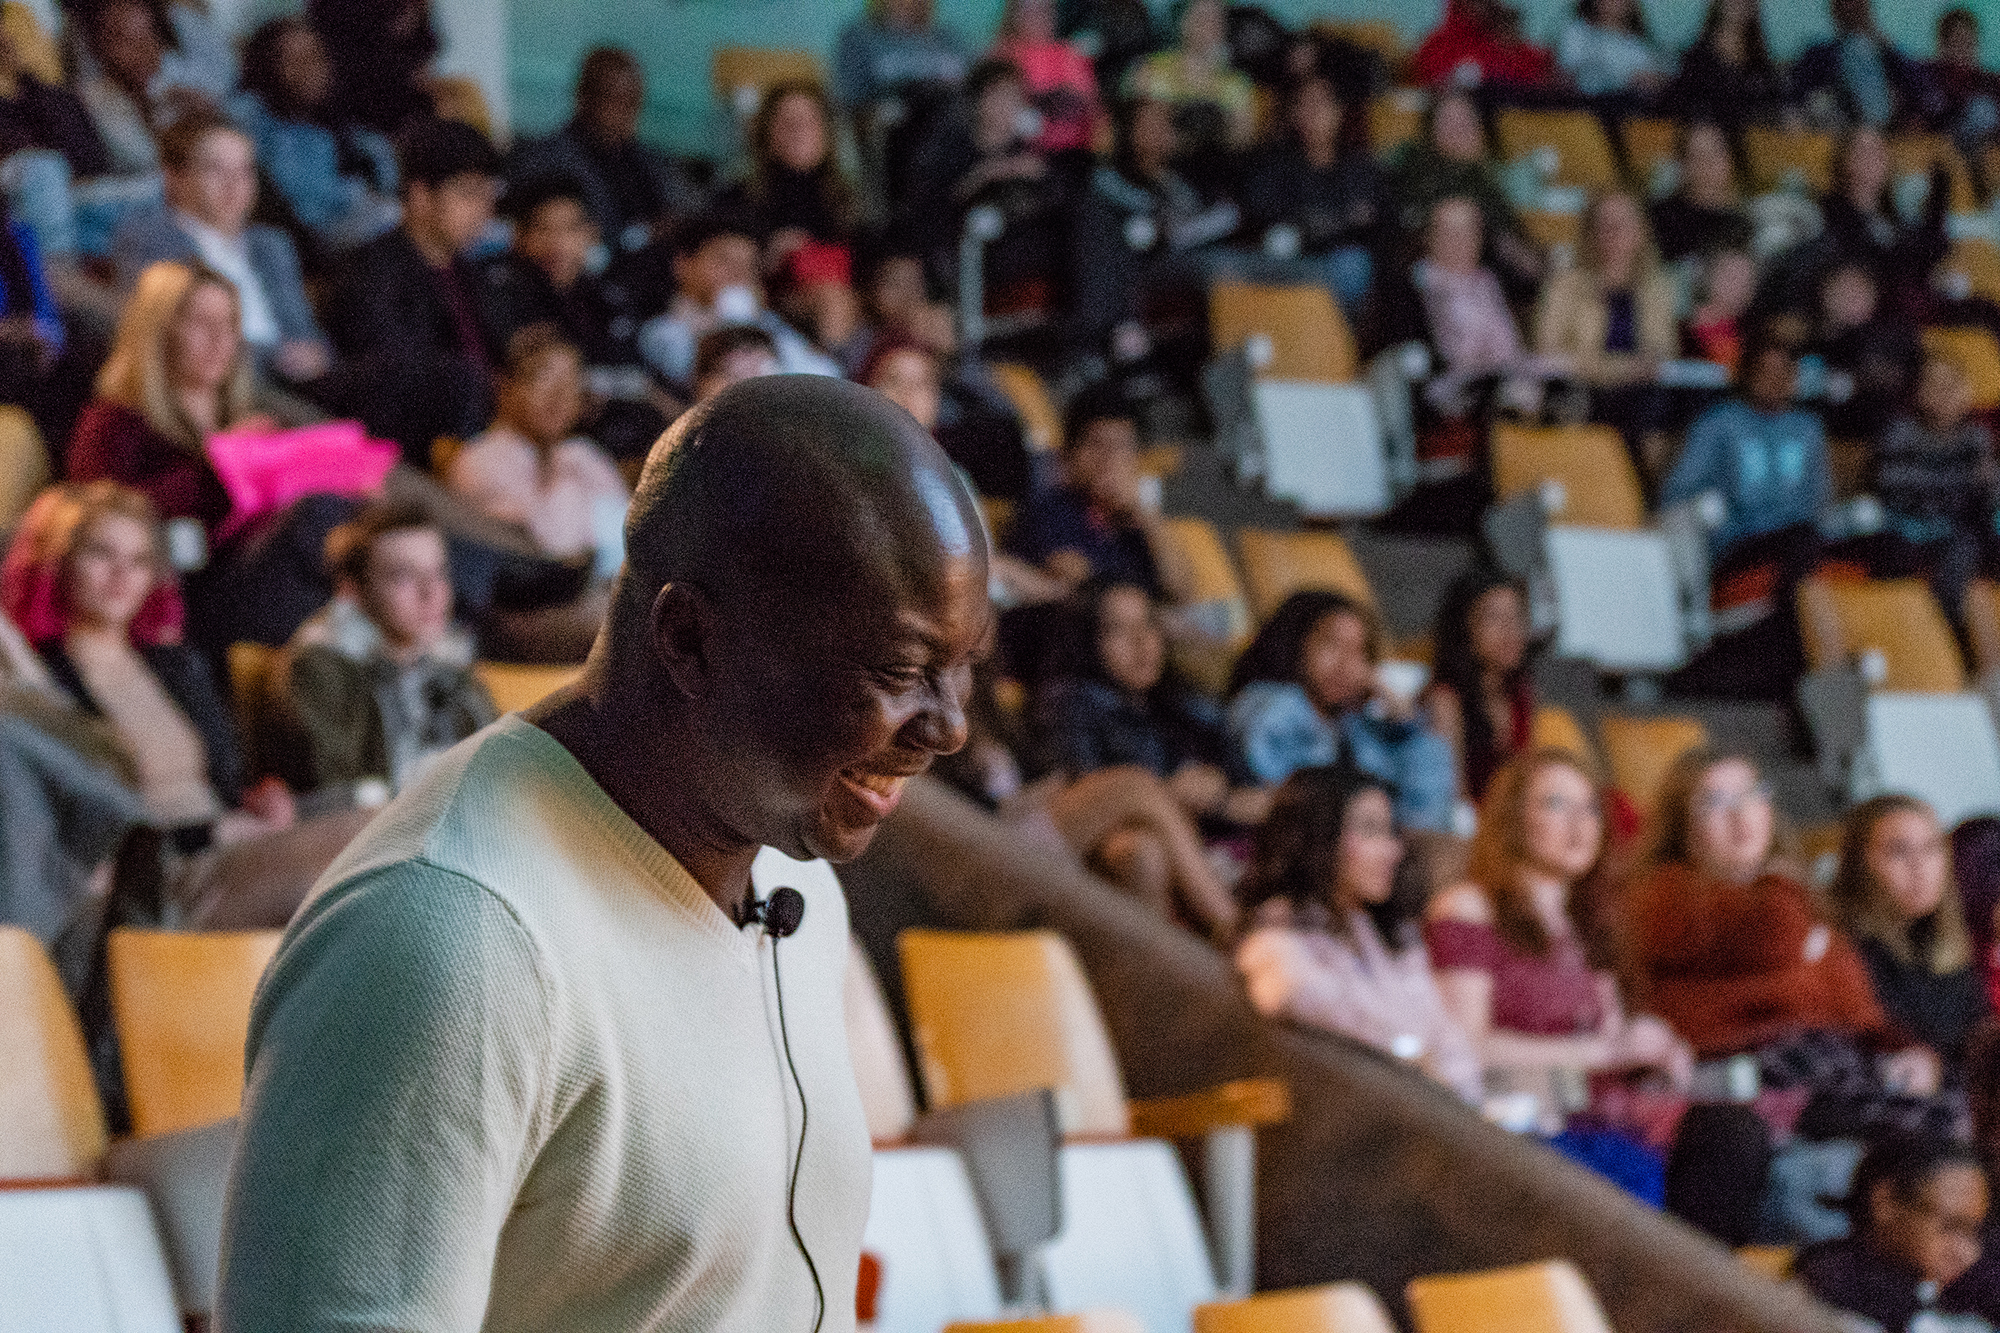 A cinematic experience for students - DRIFF partners with G.L. Roberts CVI & invites other schools to joinAll films are selected for a high school audience with a focus on cultural, relevant and educational content